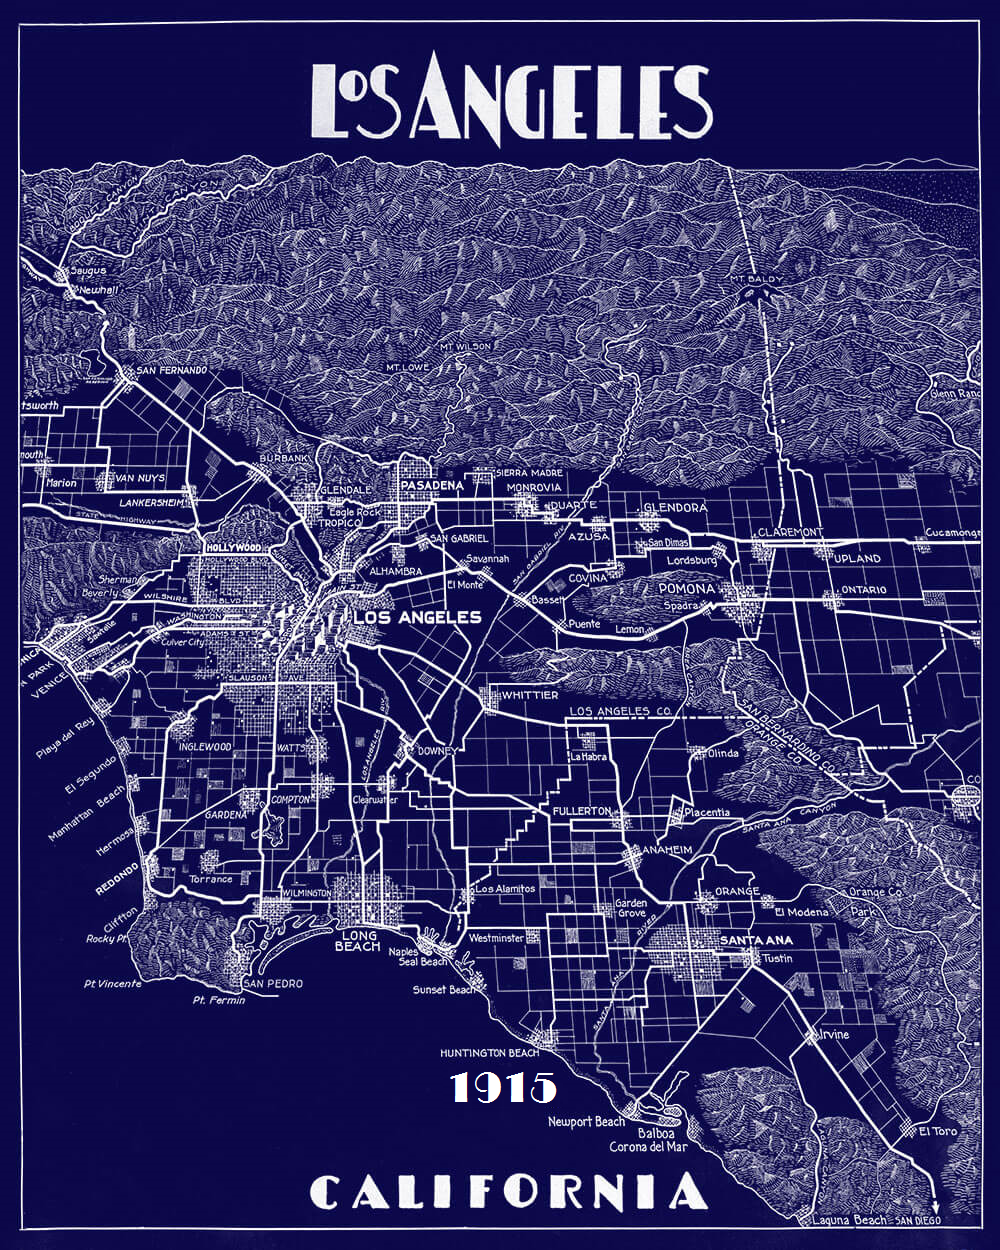 1915 Los Angeles Map-Navy Blue-with date added